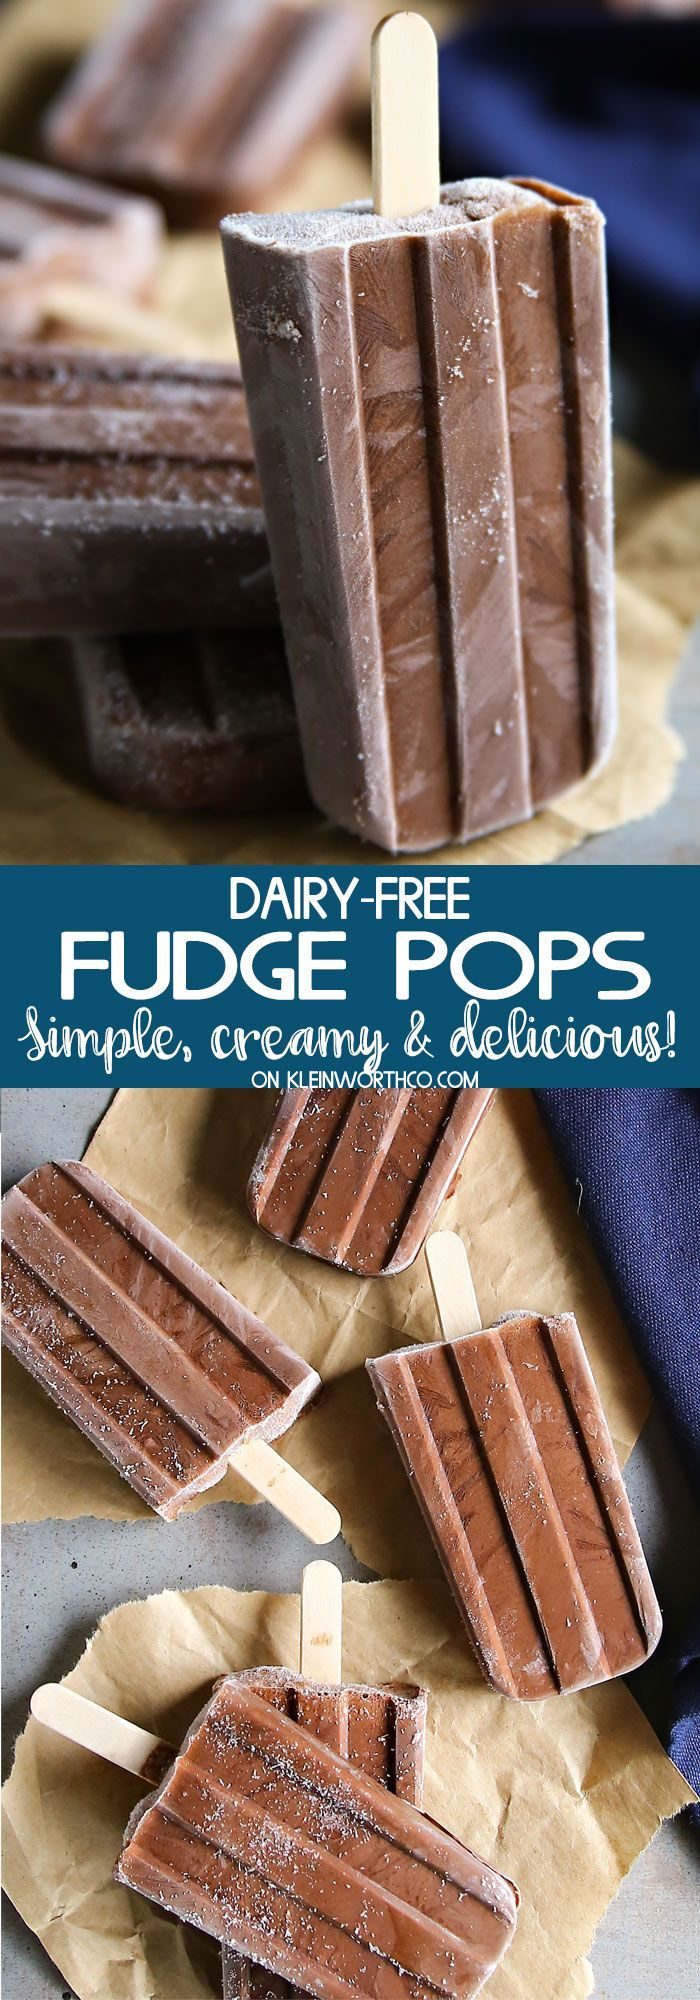 Dairy-Free Fudge Pops Recipe is the perfect summertime frozen treat. Made with coconut milk & no refined sugar, these are ultra creamy & SUPER DELICIOUS! via @KleinworthCo